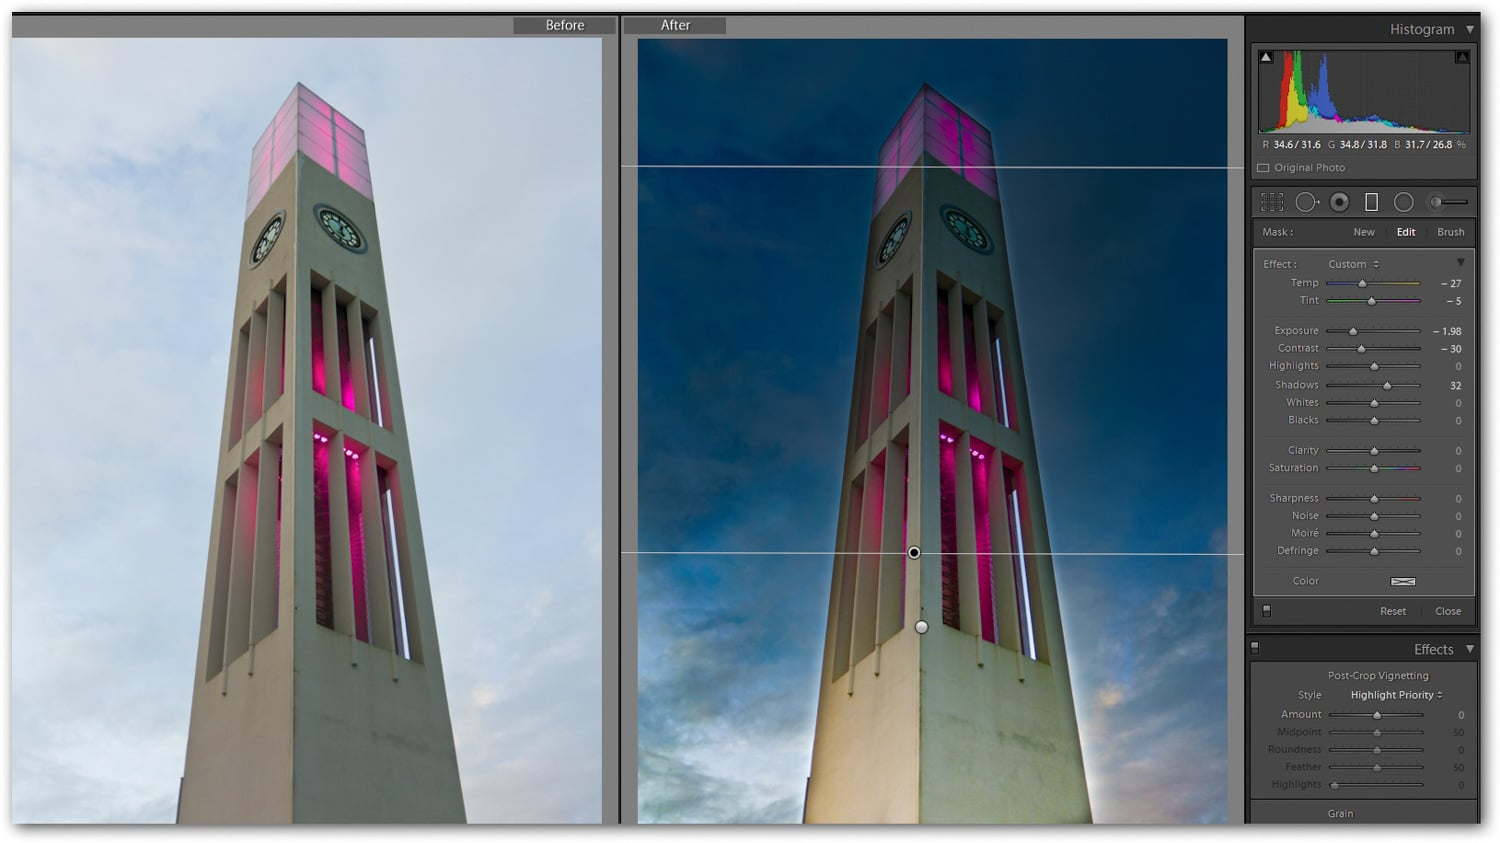 Image 6 — combining the Graduated Filter with the Adjustment Brush